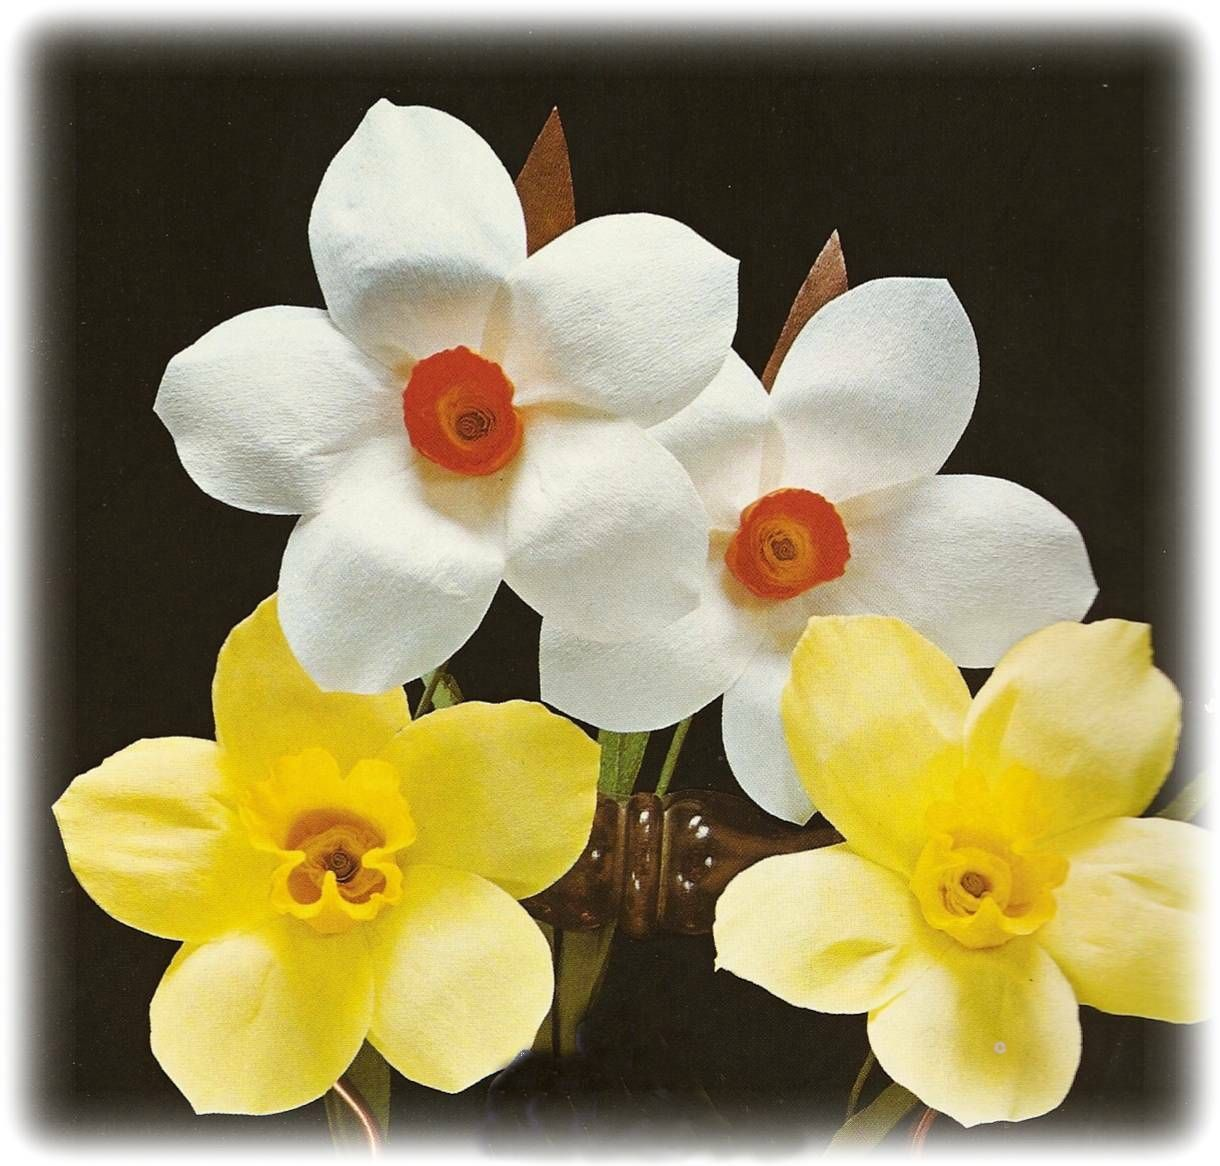 How to make paper daffodils and narcissi daffodils